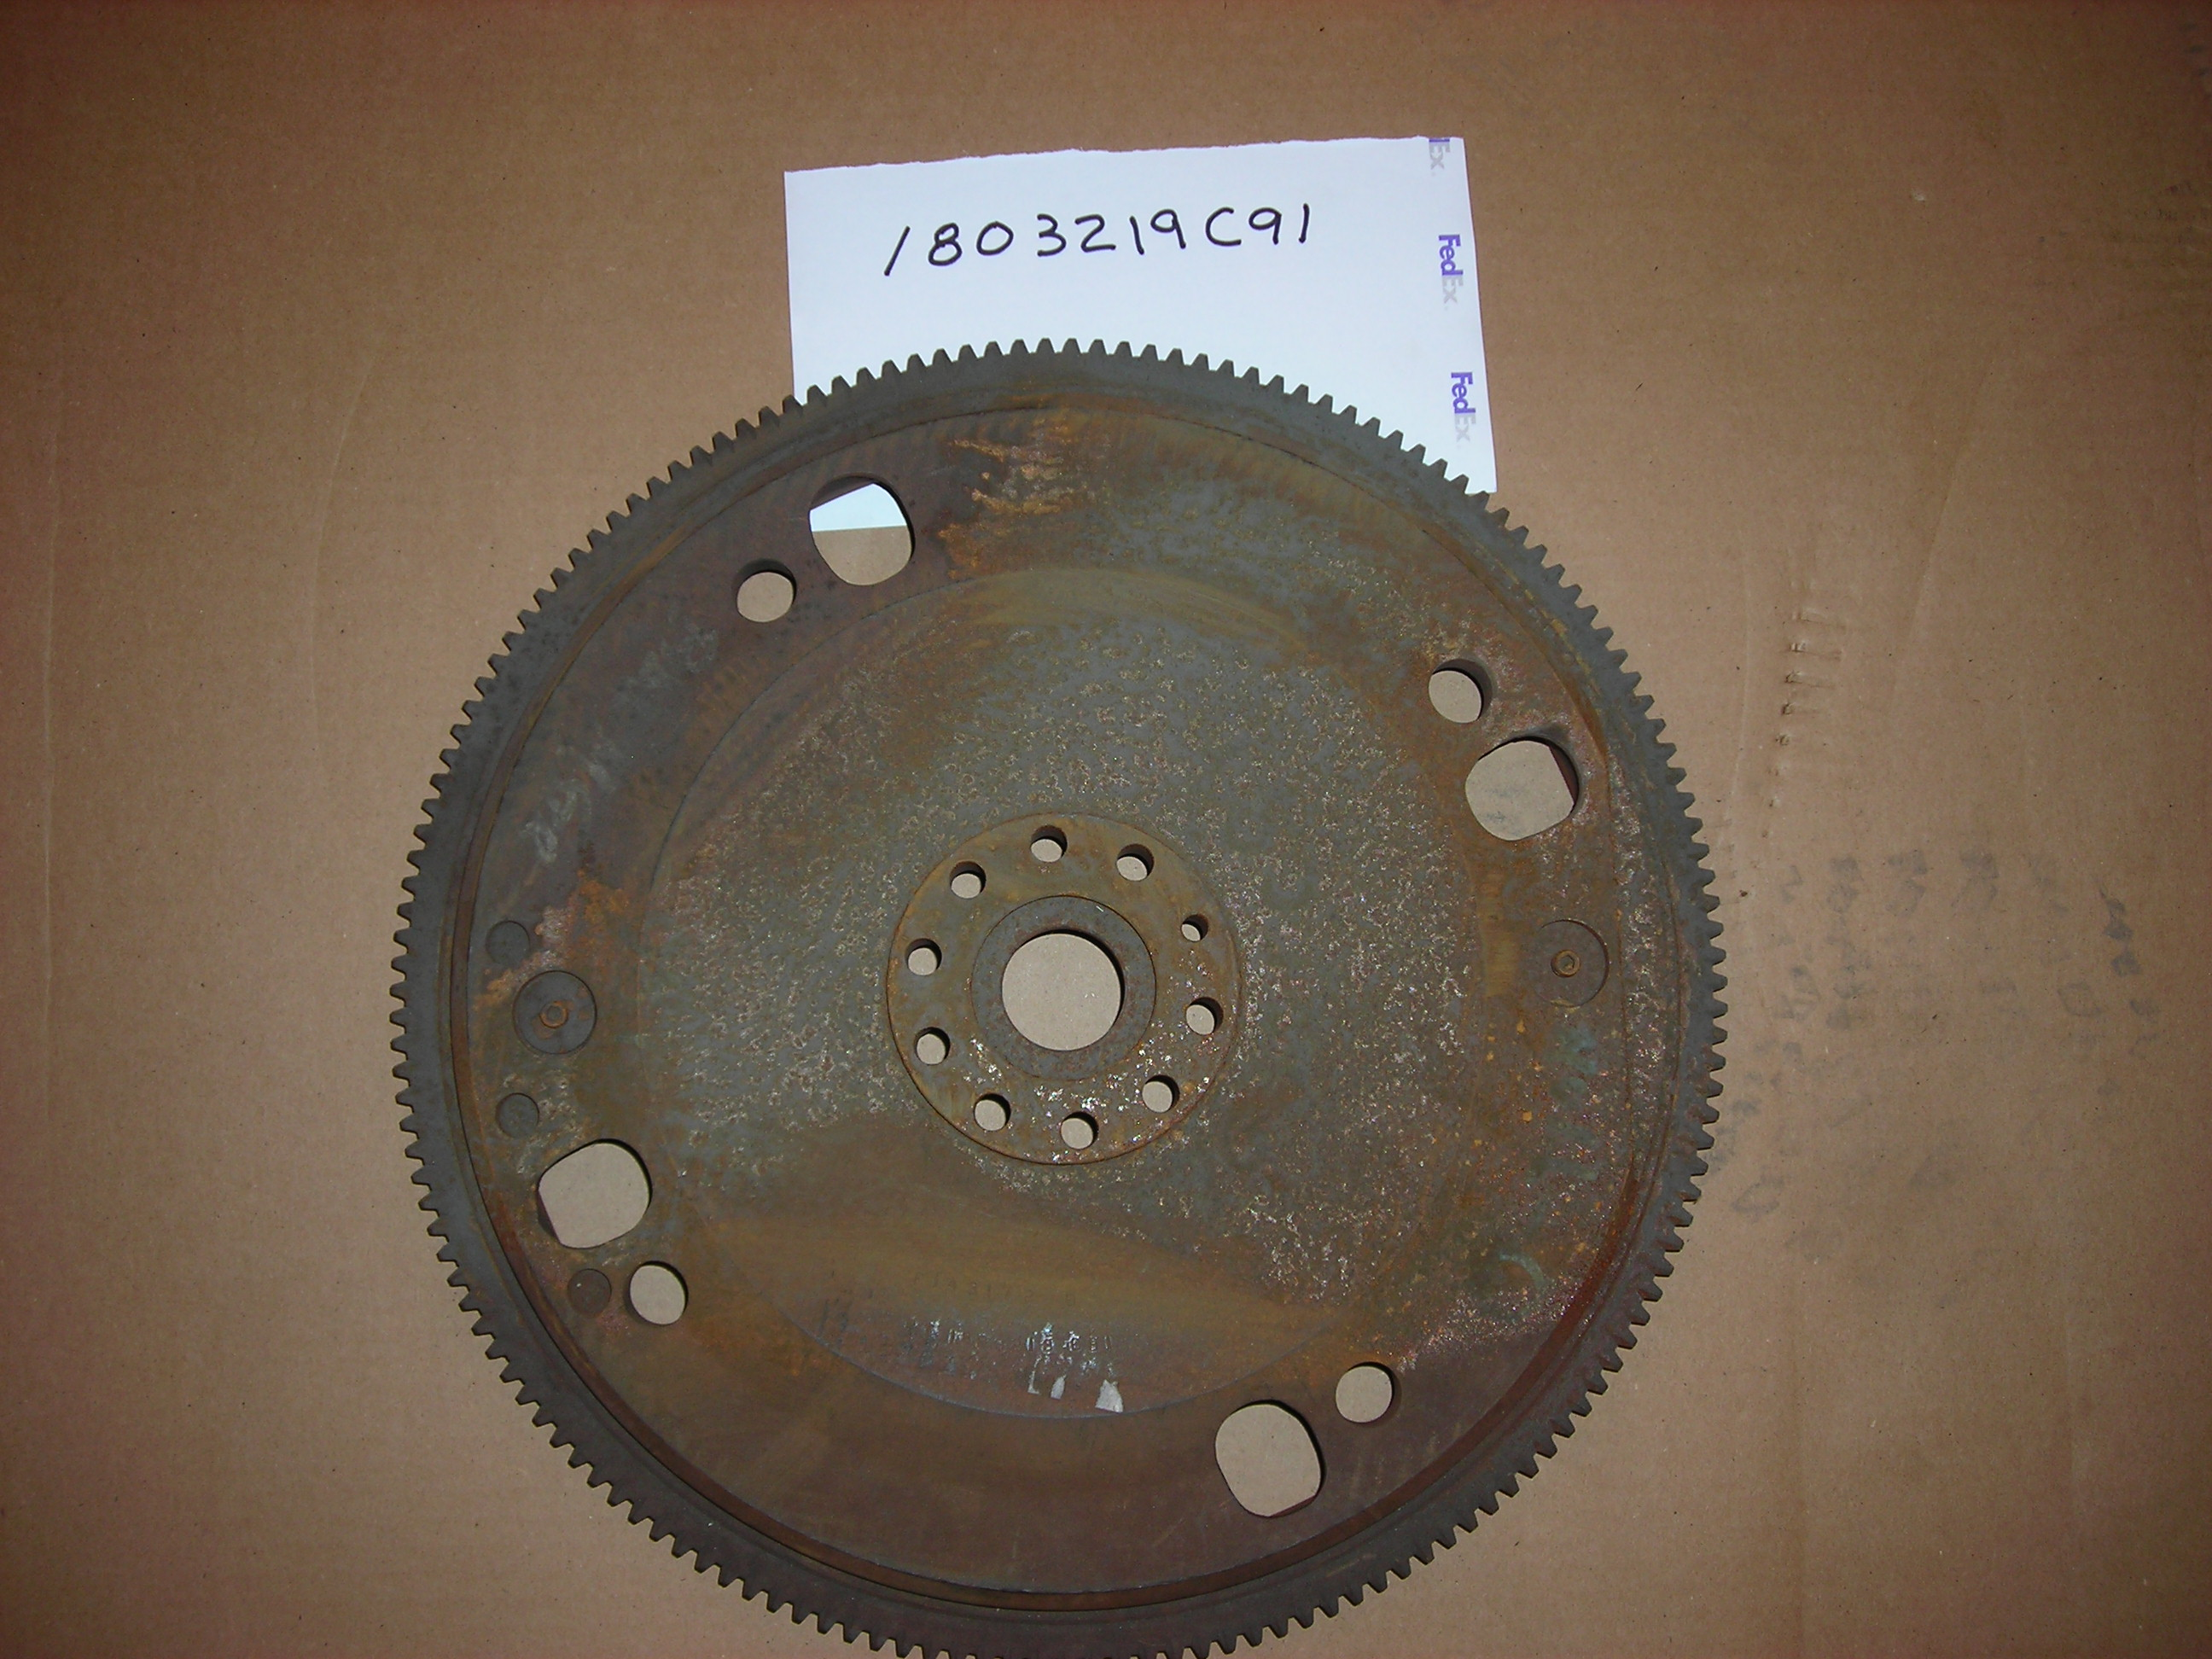 1803219C91 Navistar International Flywheel Front